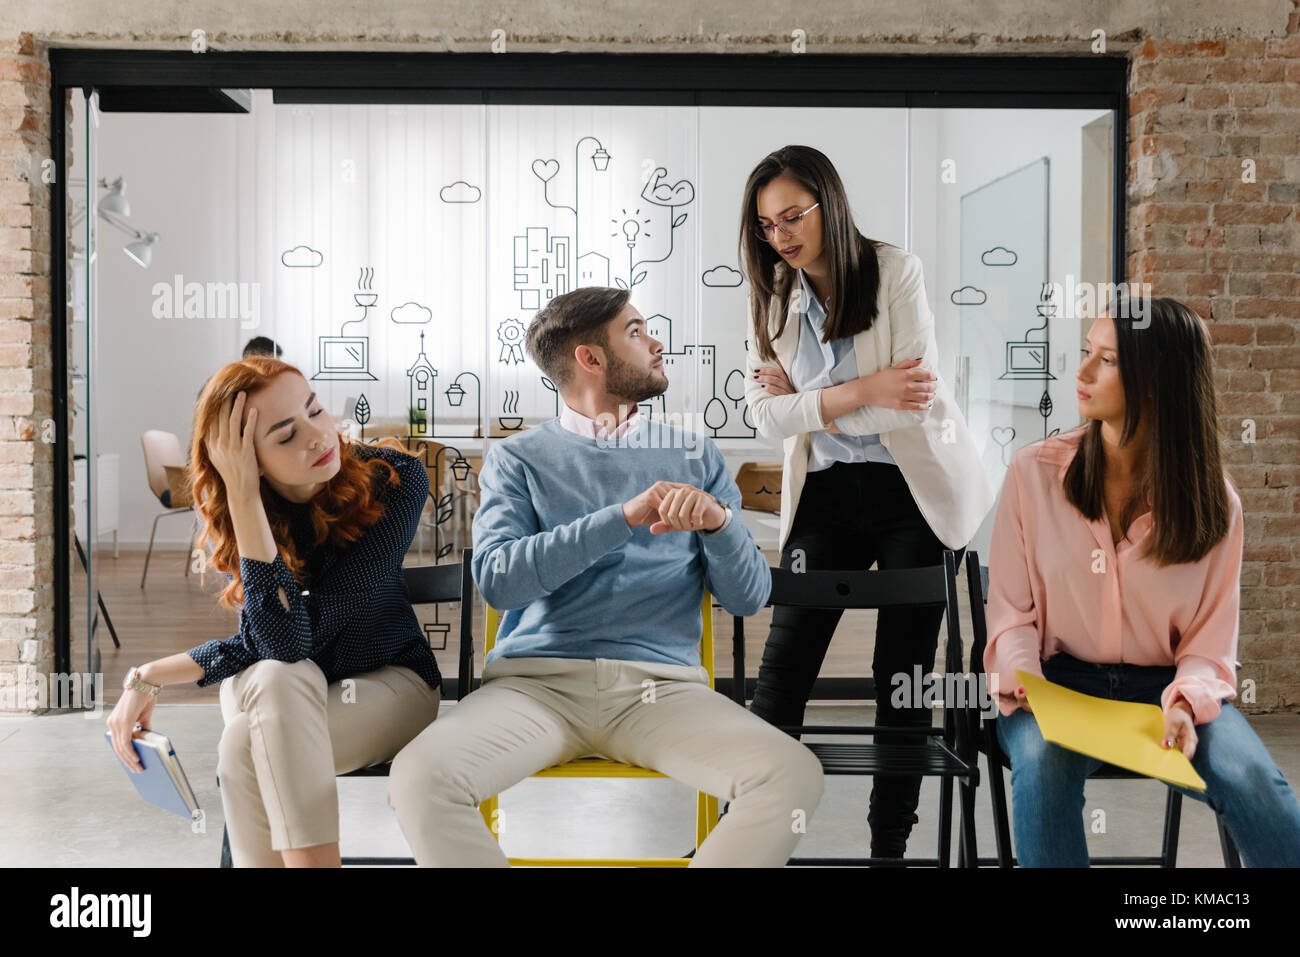 Small talk in the waiting room before a job interview - Stock Image